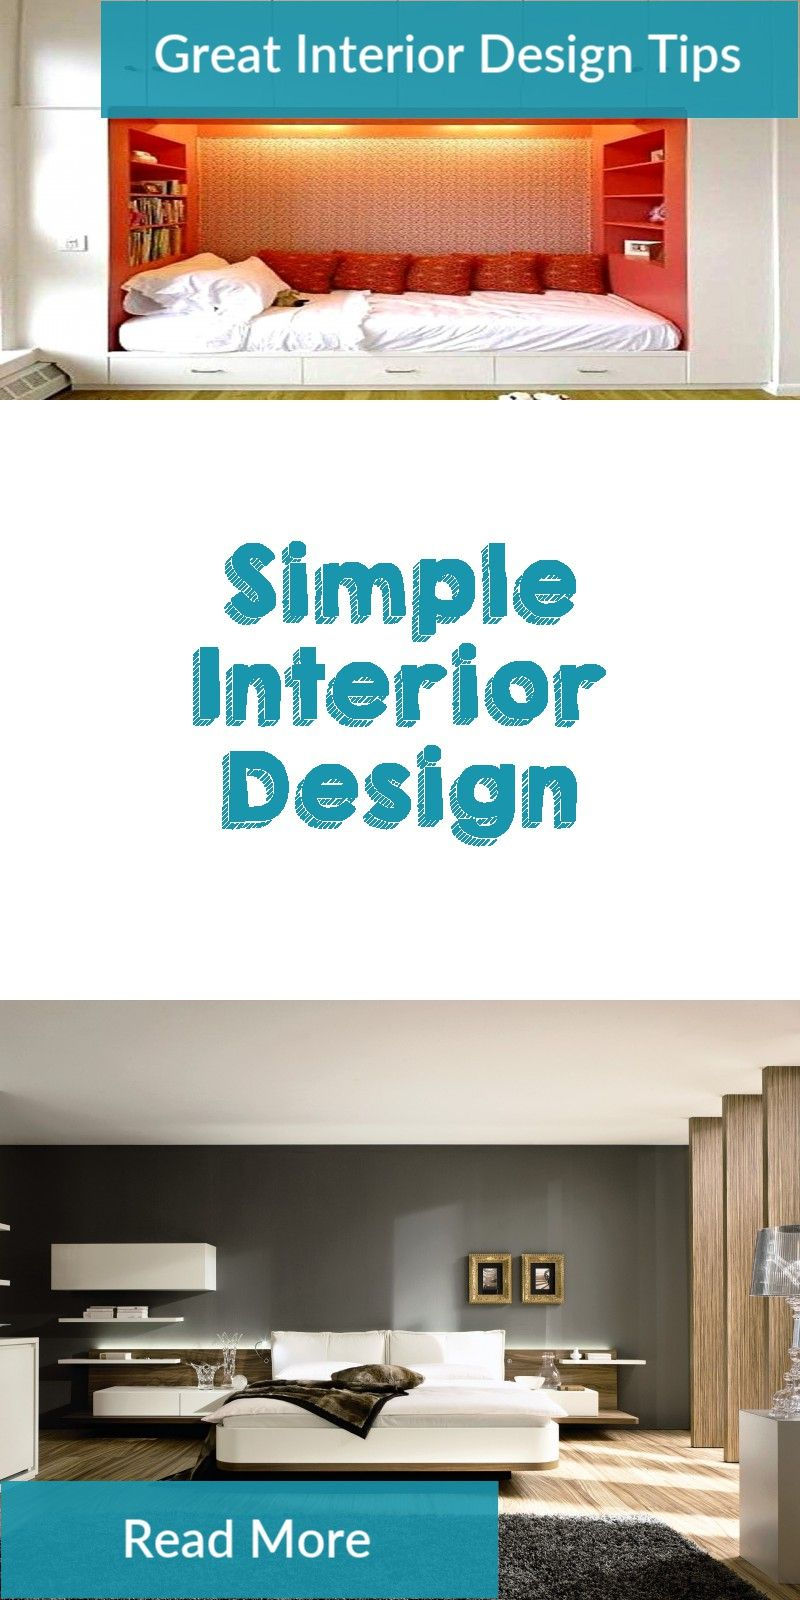 Interior Design Do You Want To Decorate Your Home Want To Know More Click On The Image Home Simple Interior Design Interior Design Decorating Your Home